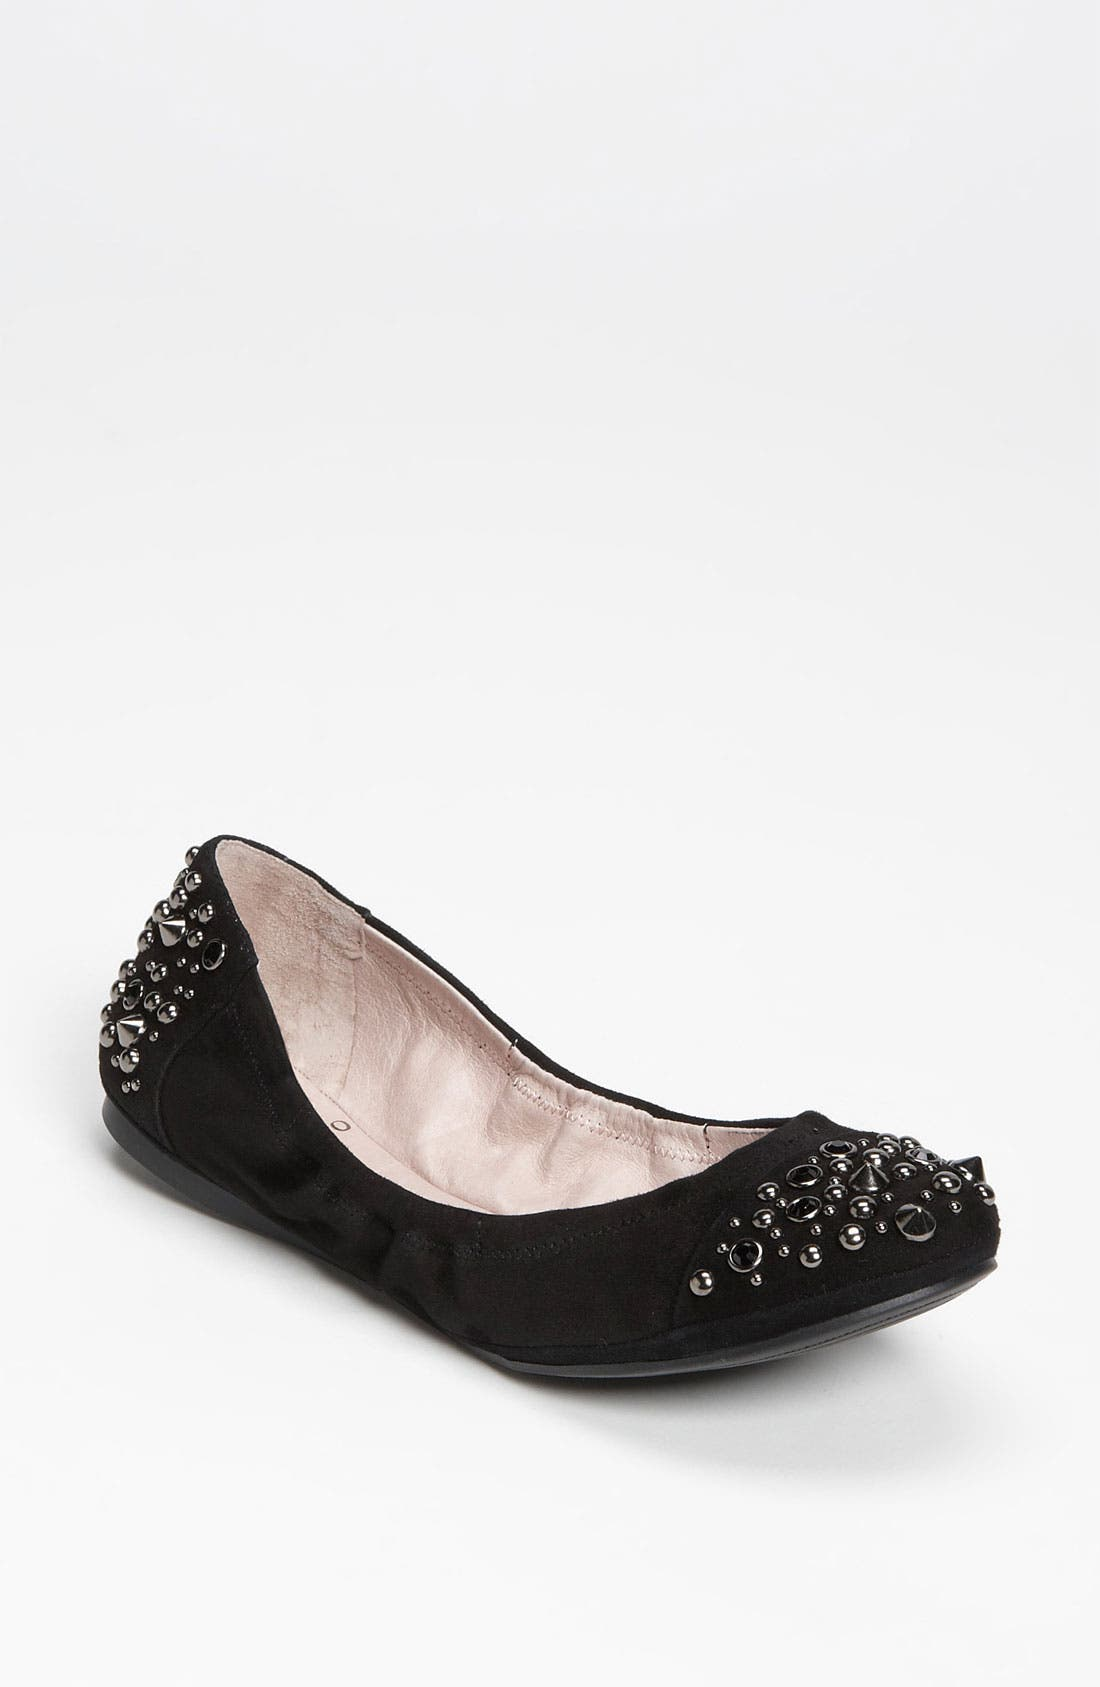 Alternate Image 1 Selected - Vince Camuto 'Evella' Flat